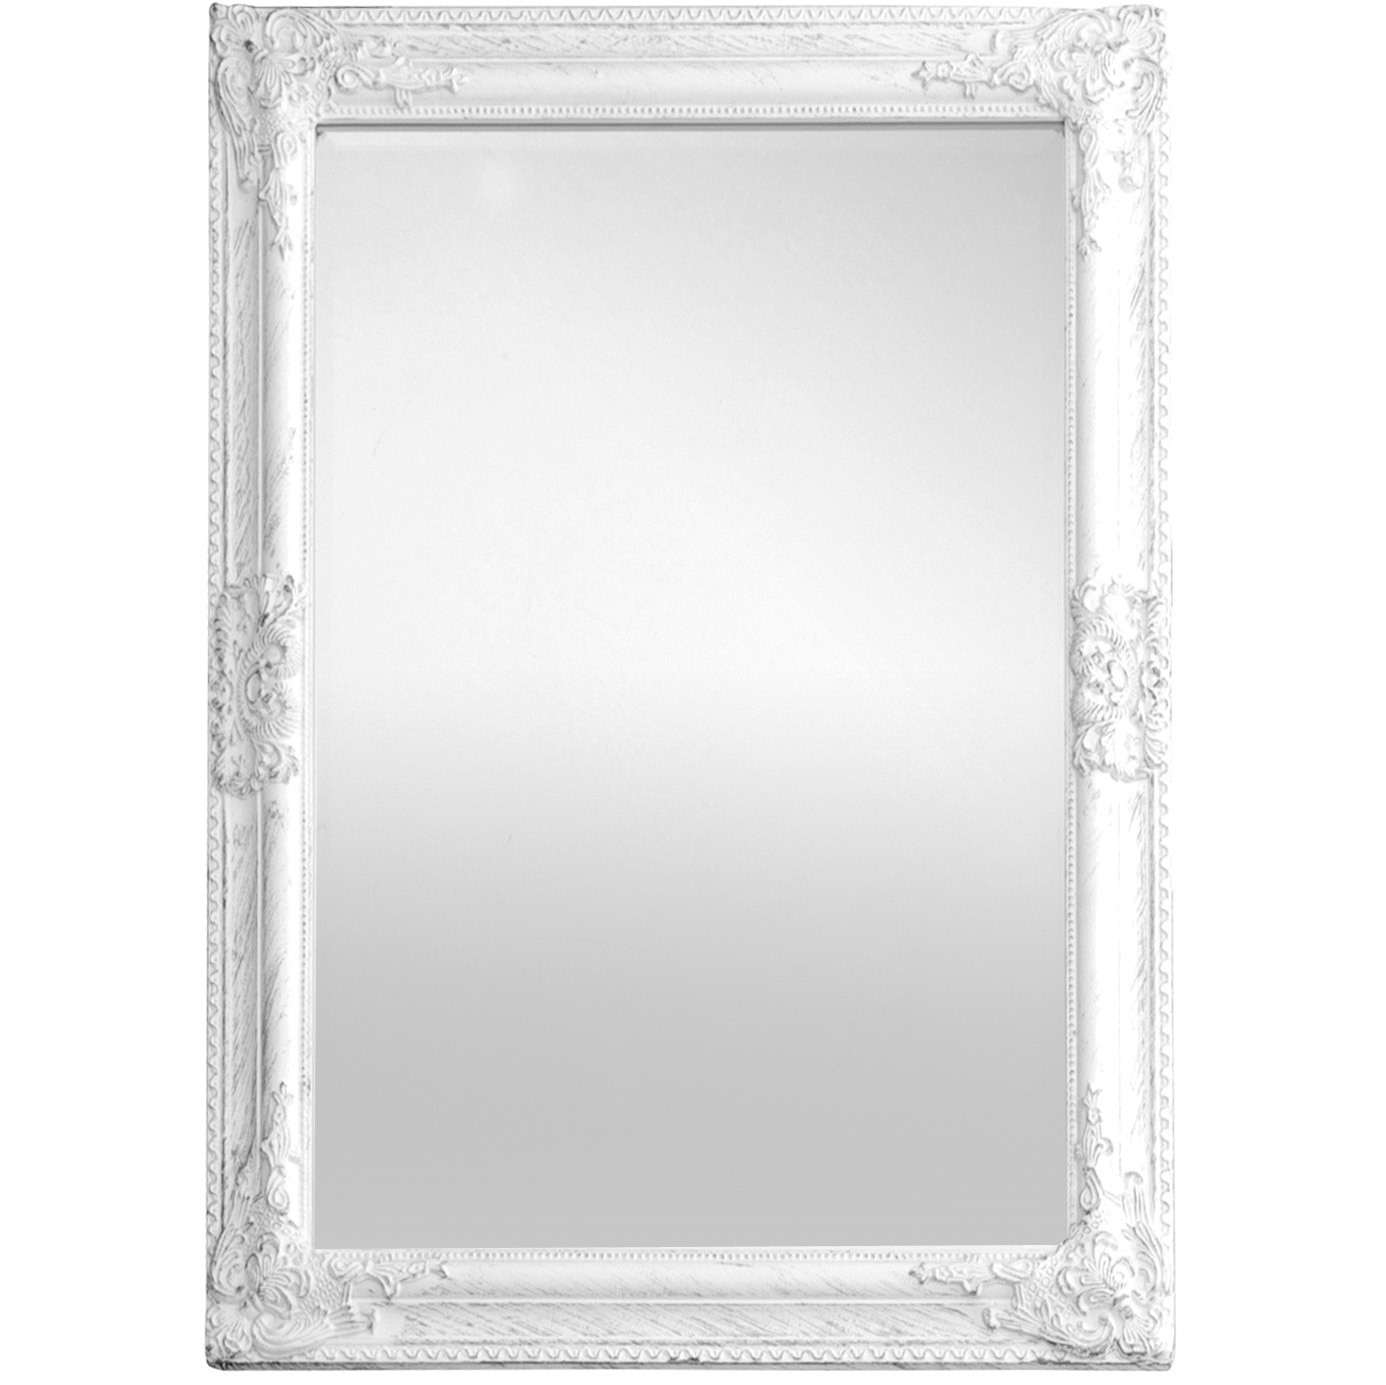 Antique Wooden Framed Mirror White For White Antique Mirror (Image 3 of 15)